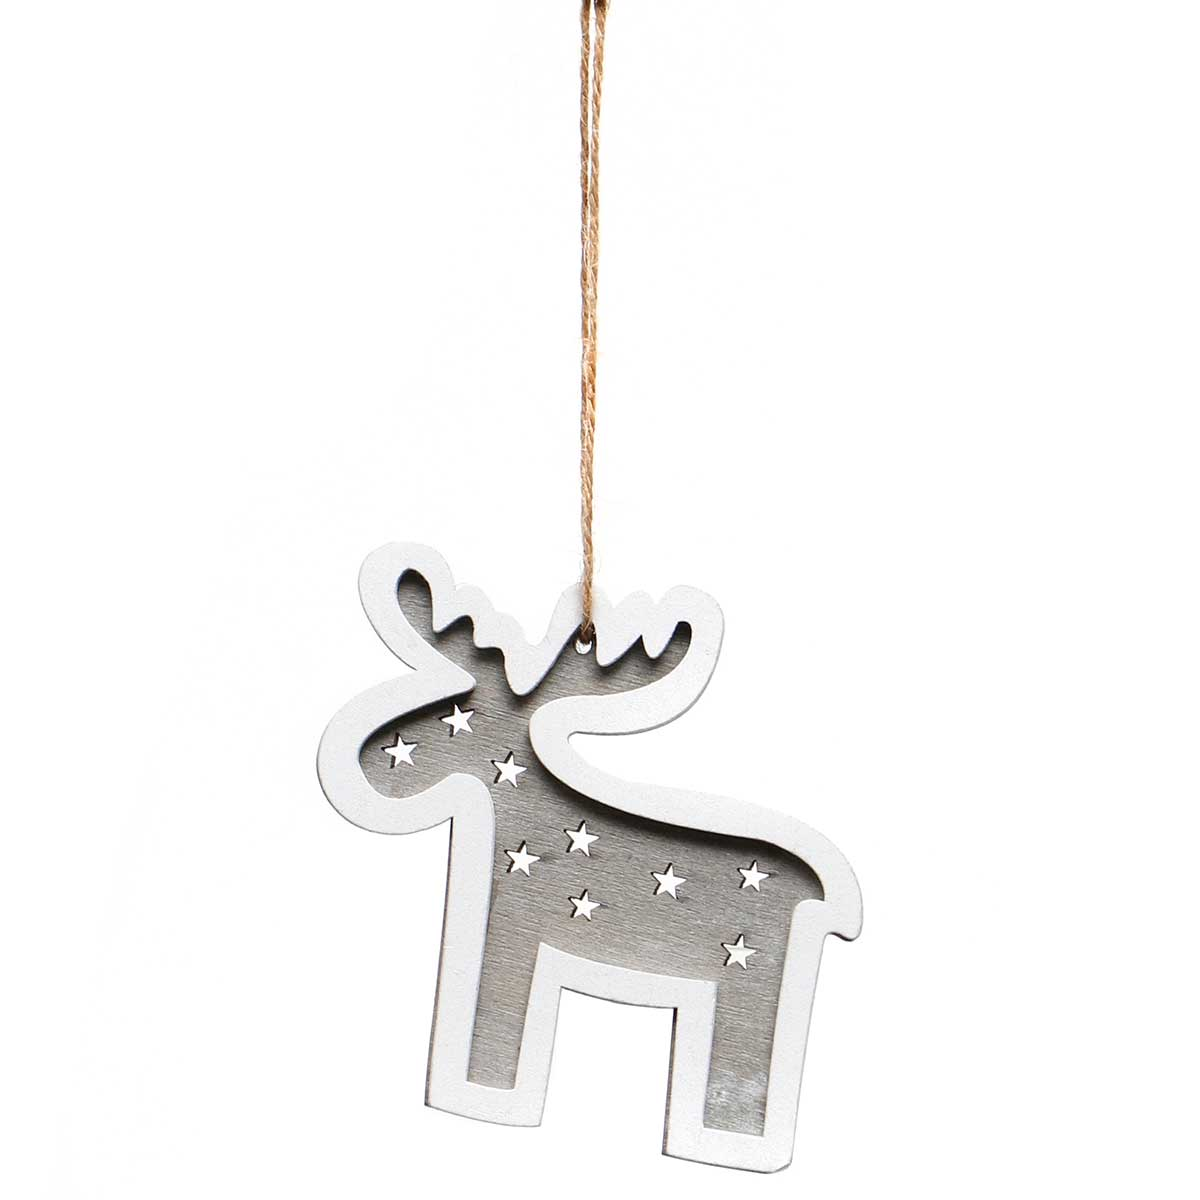 GREY/WHITE WOOD MOOSE ORNAMENT AMENT